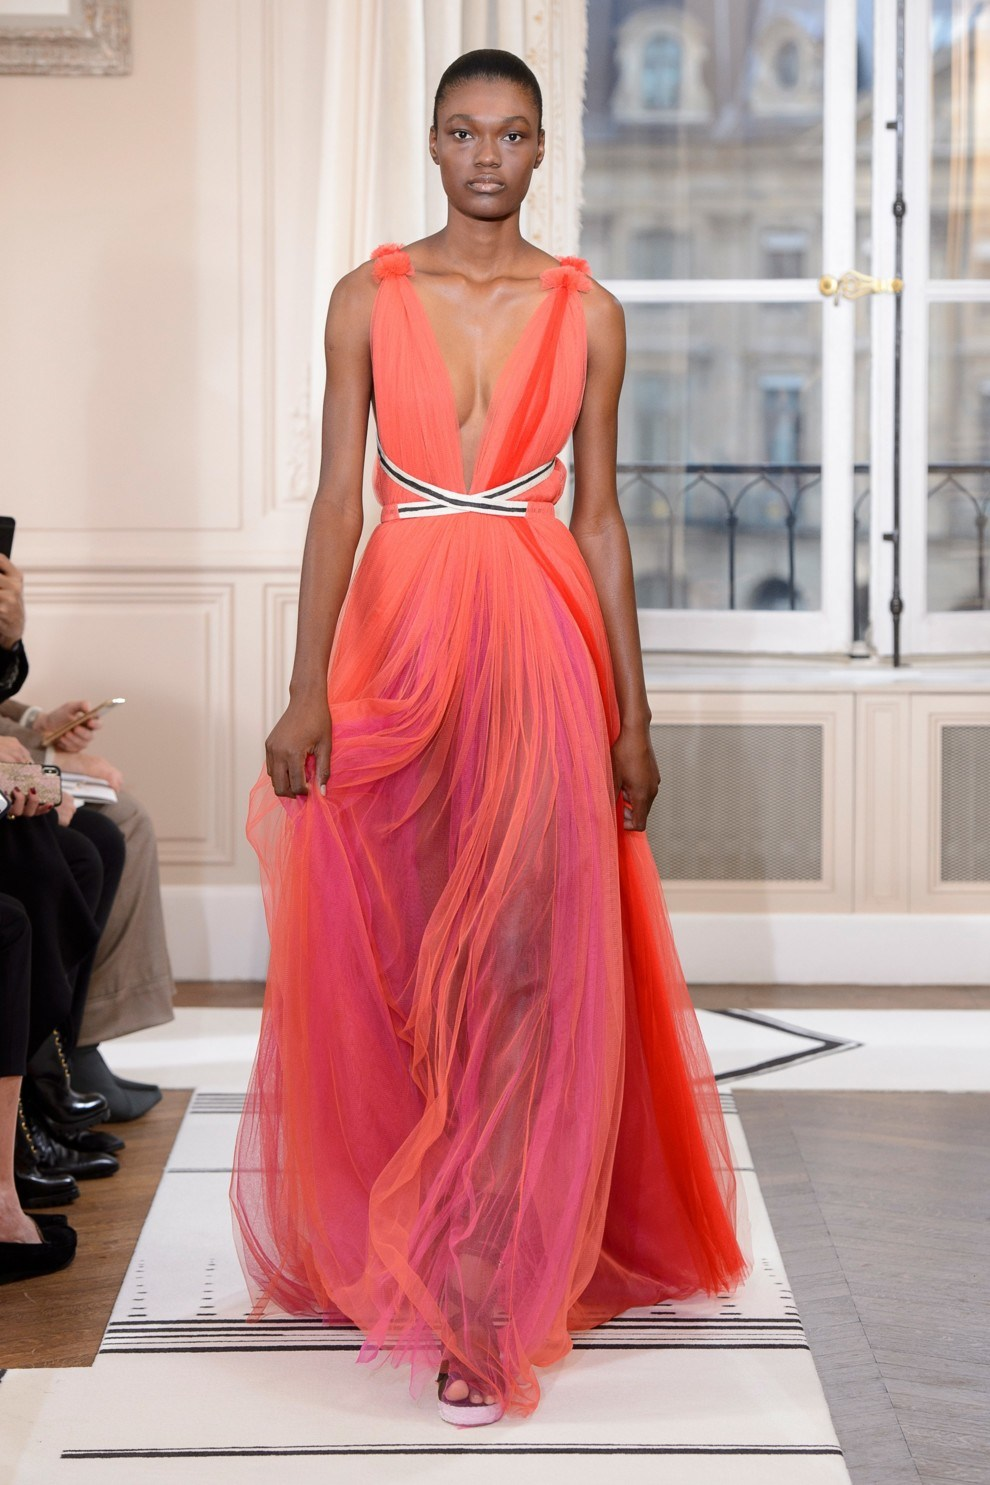 Asymmetrical Maxi gowns